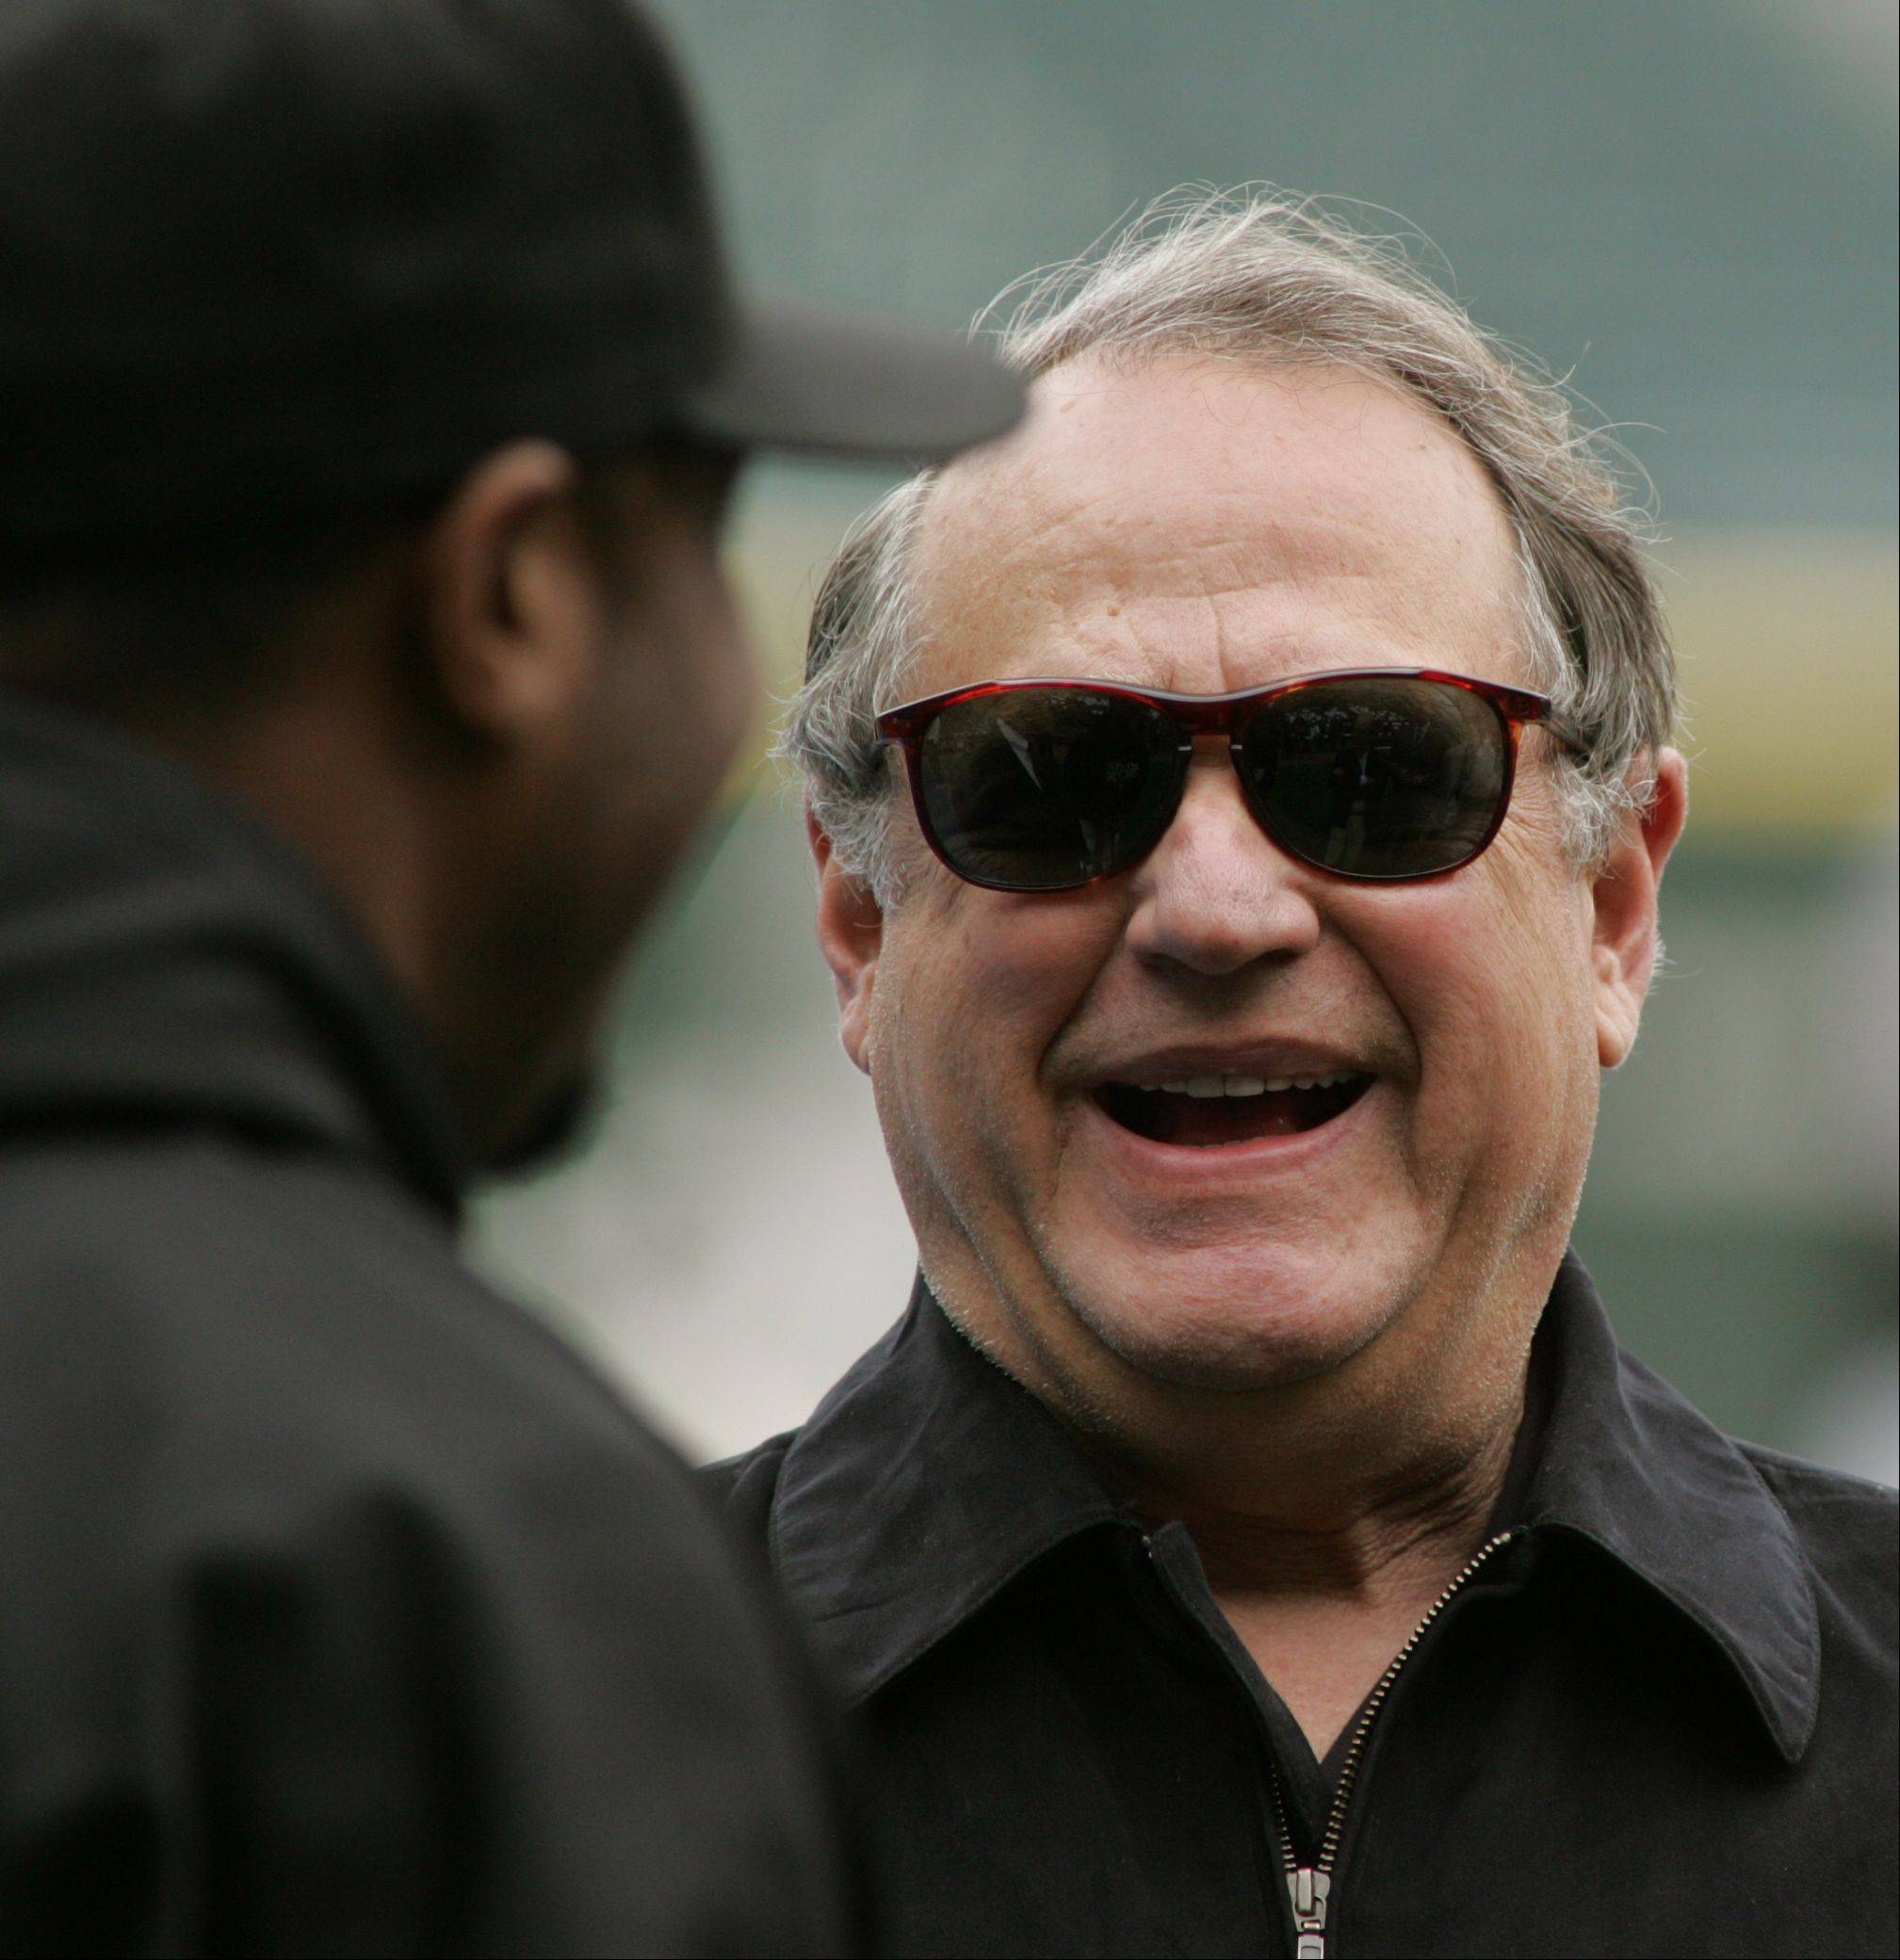 Does White Sox Chairman Jerry Reinsdorf really believe what he says?